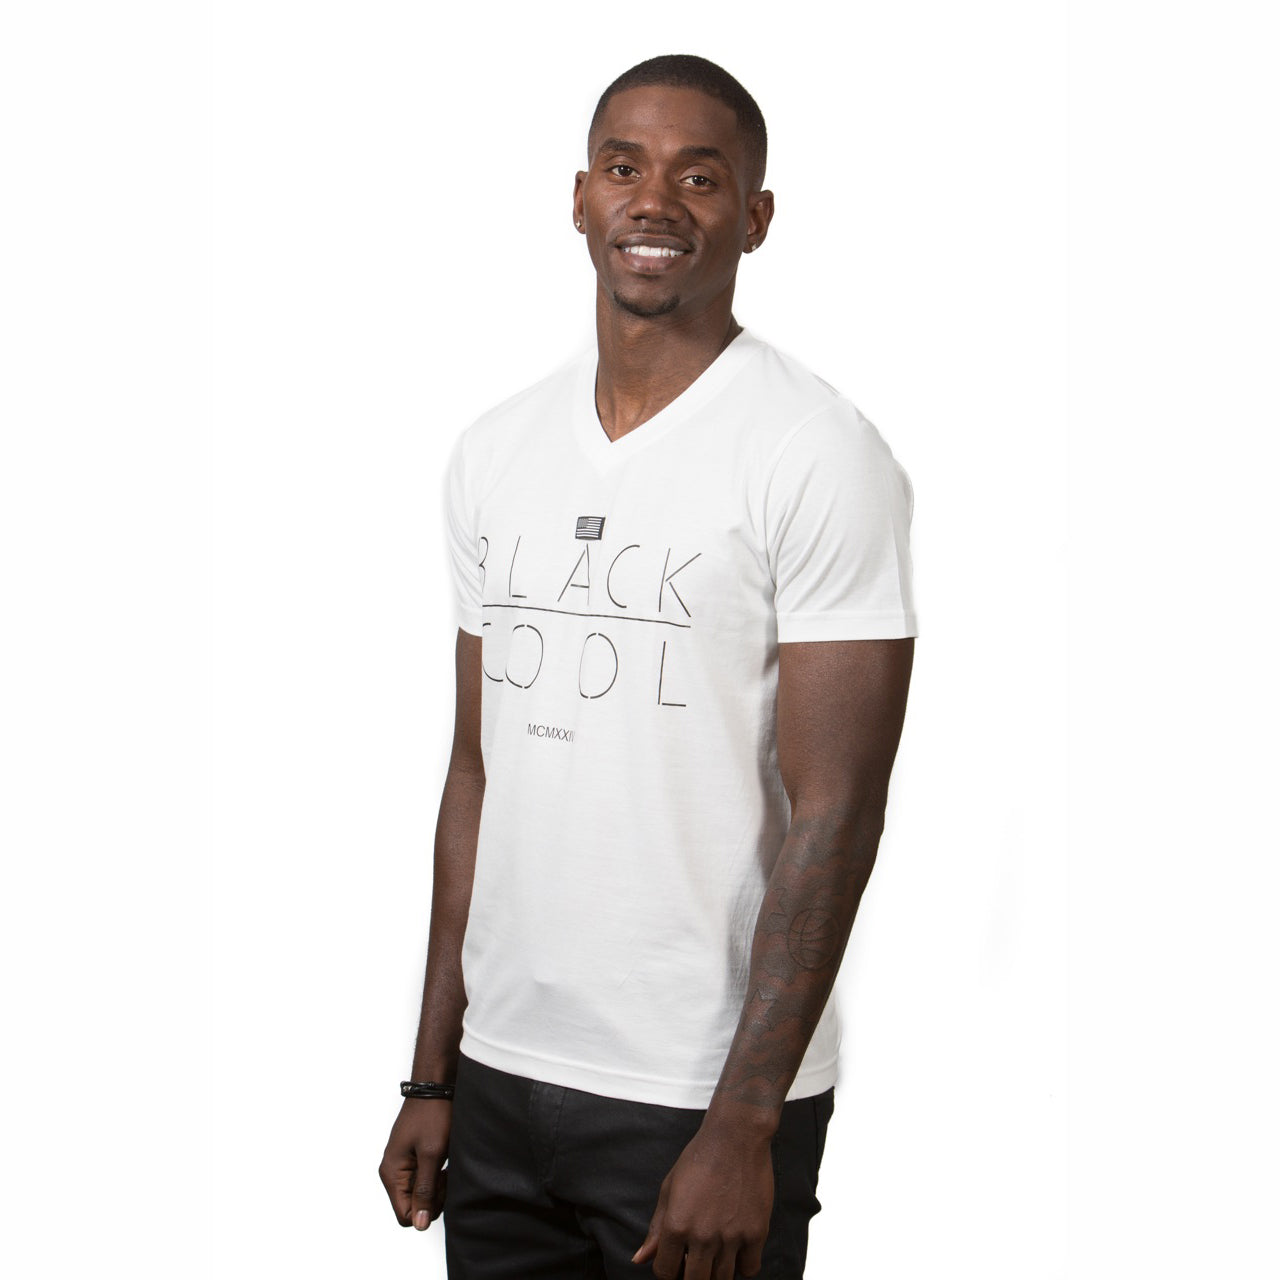 BlackCool - Signature Vintage Tee - Ultra Premium Apparel & Accessories